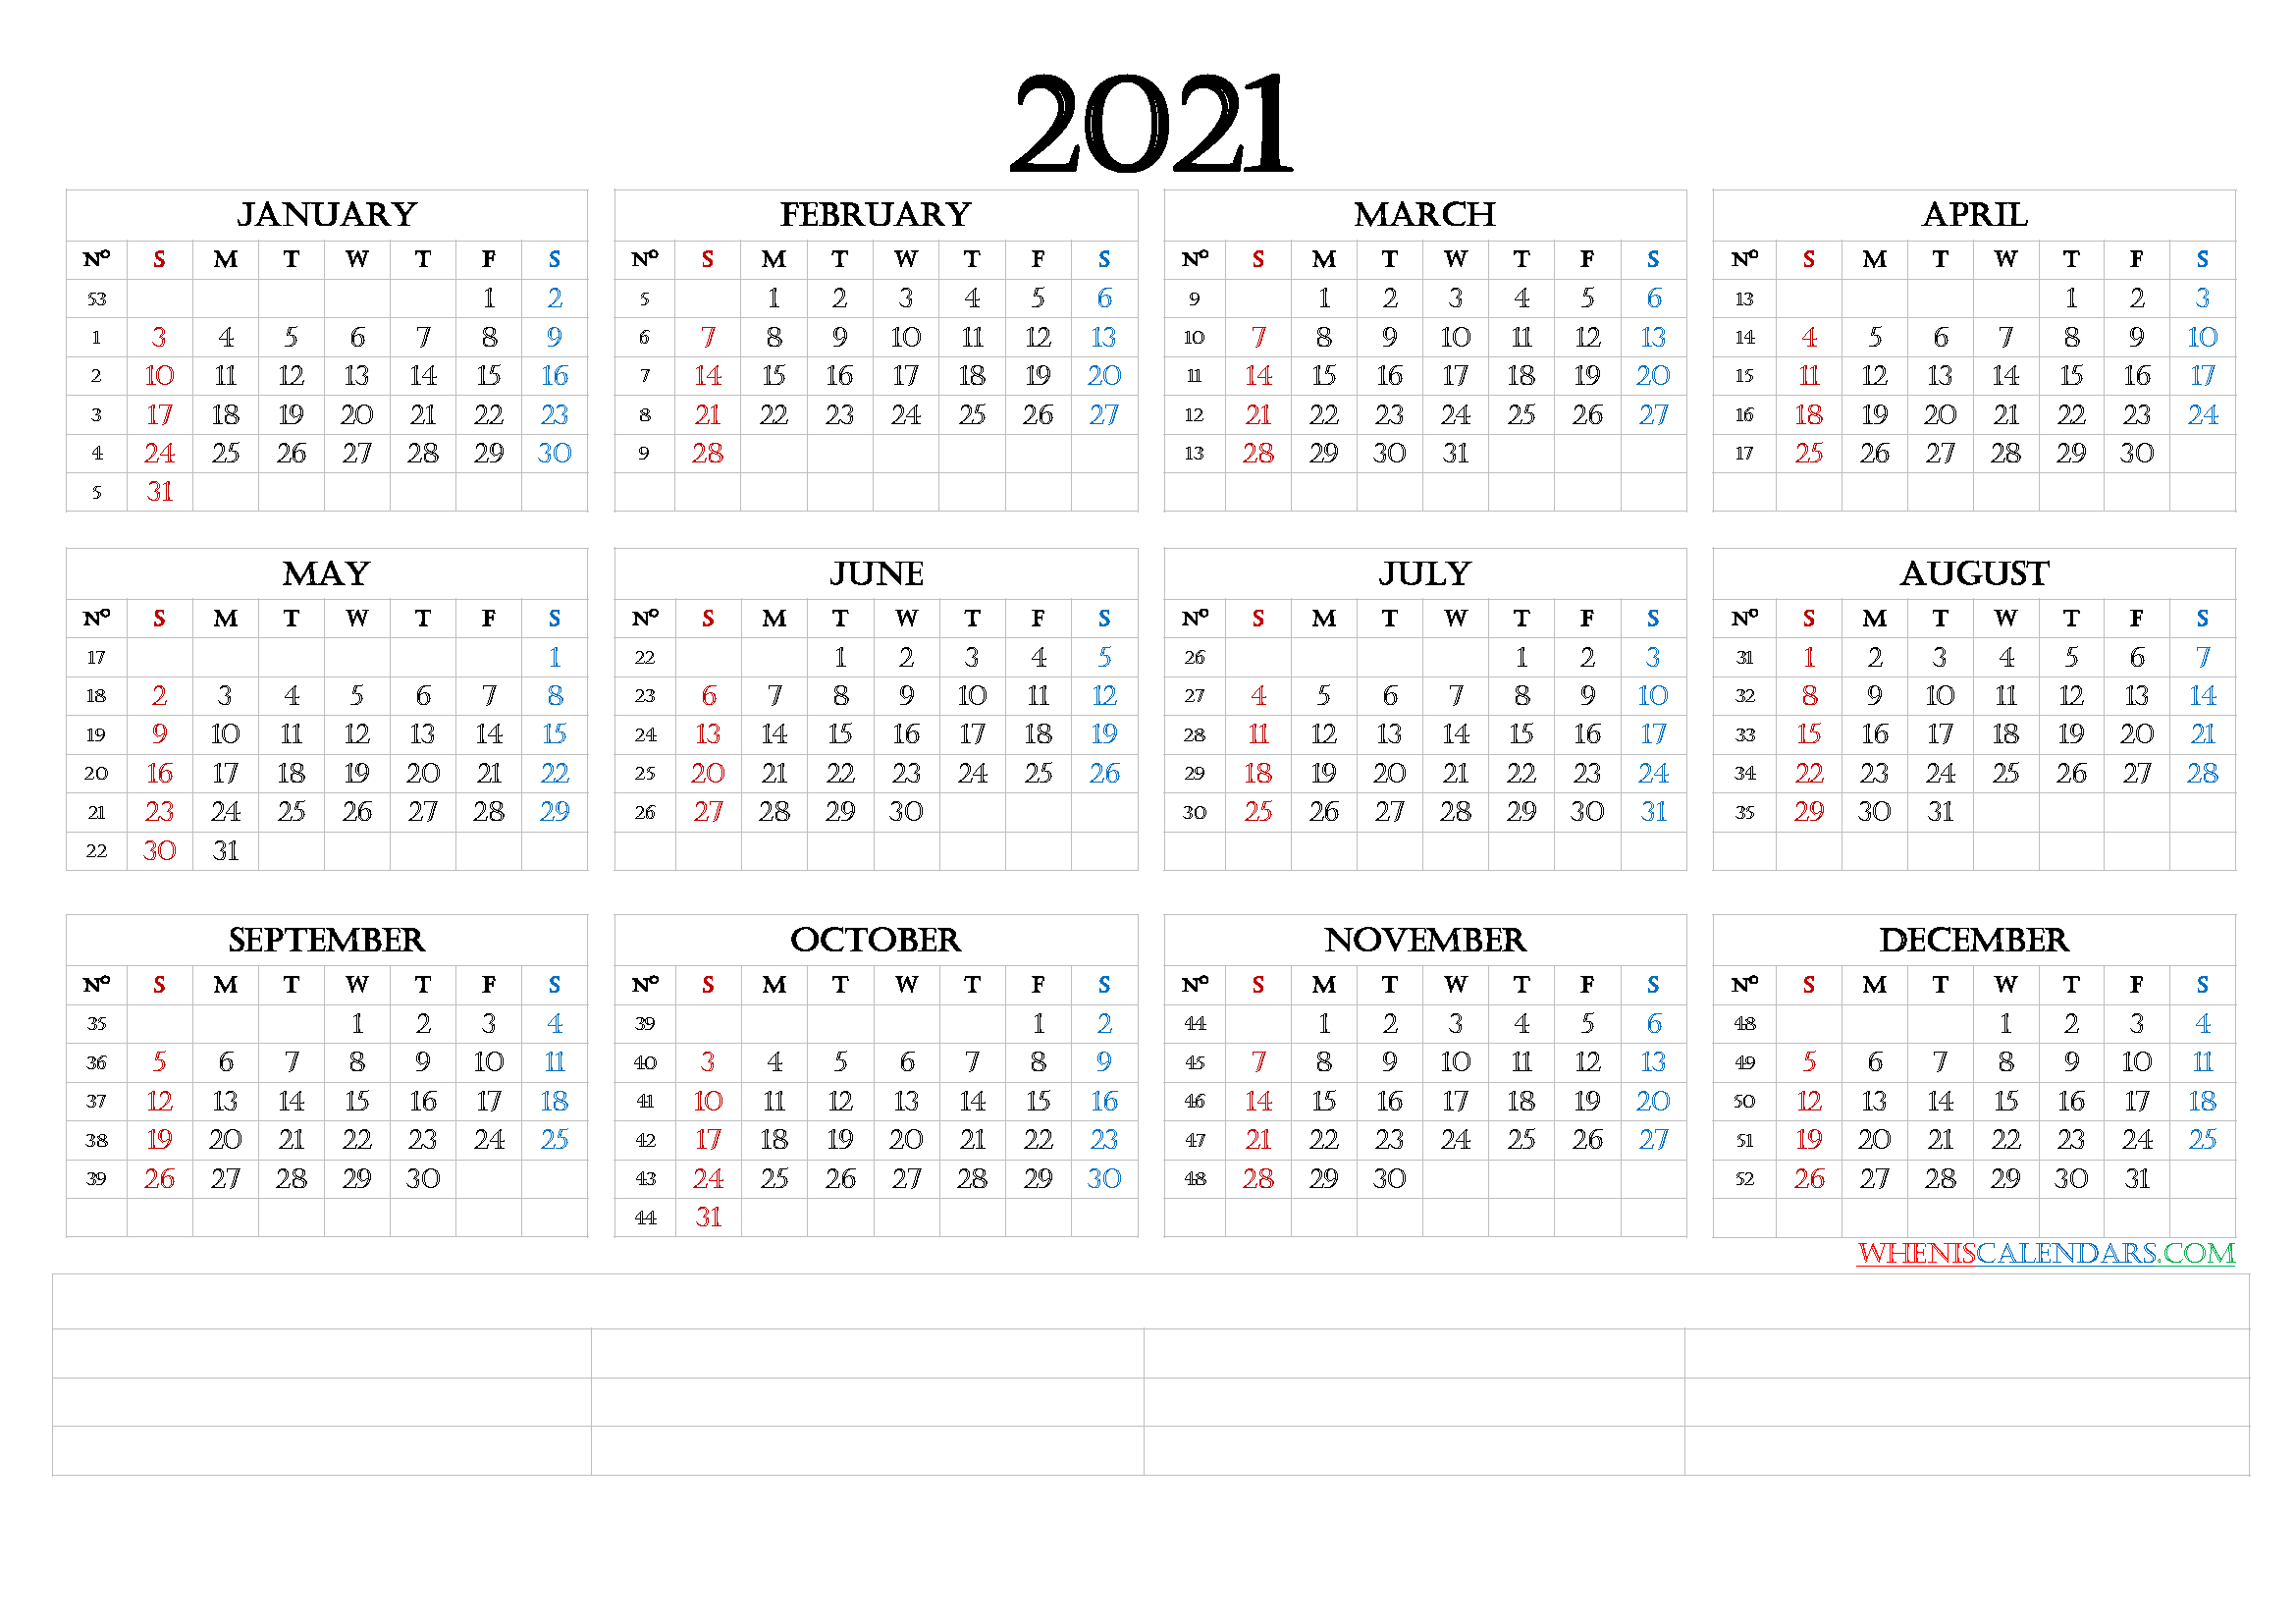 2021 Calendar Overview Pictures